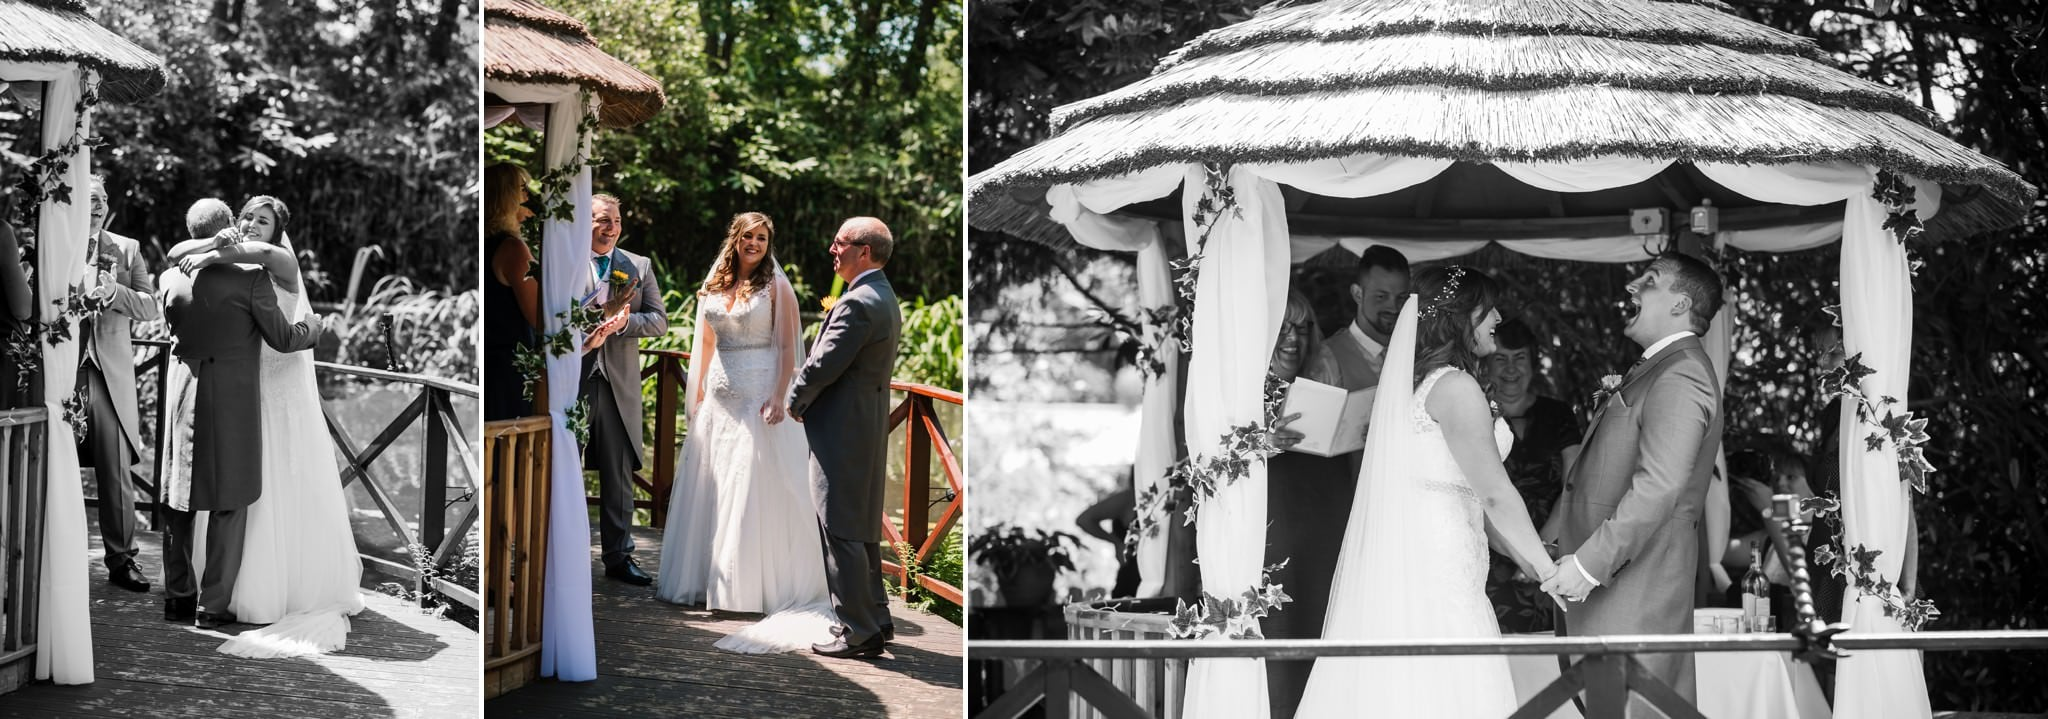 Wedding ceremony at Gordleton Mill